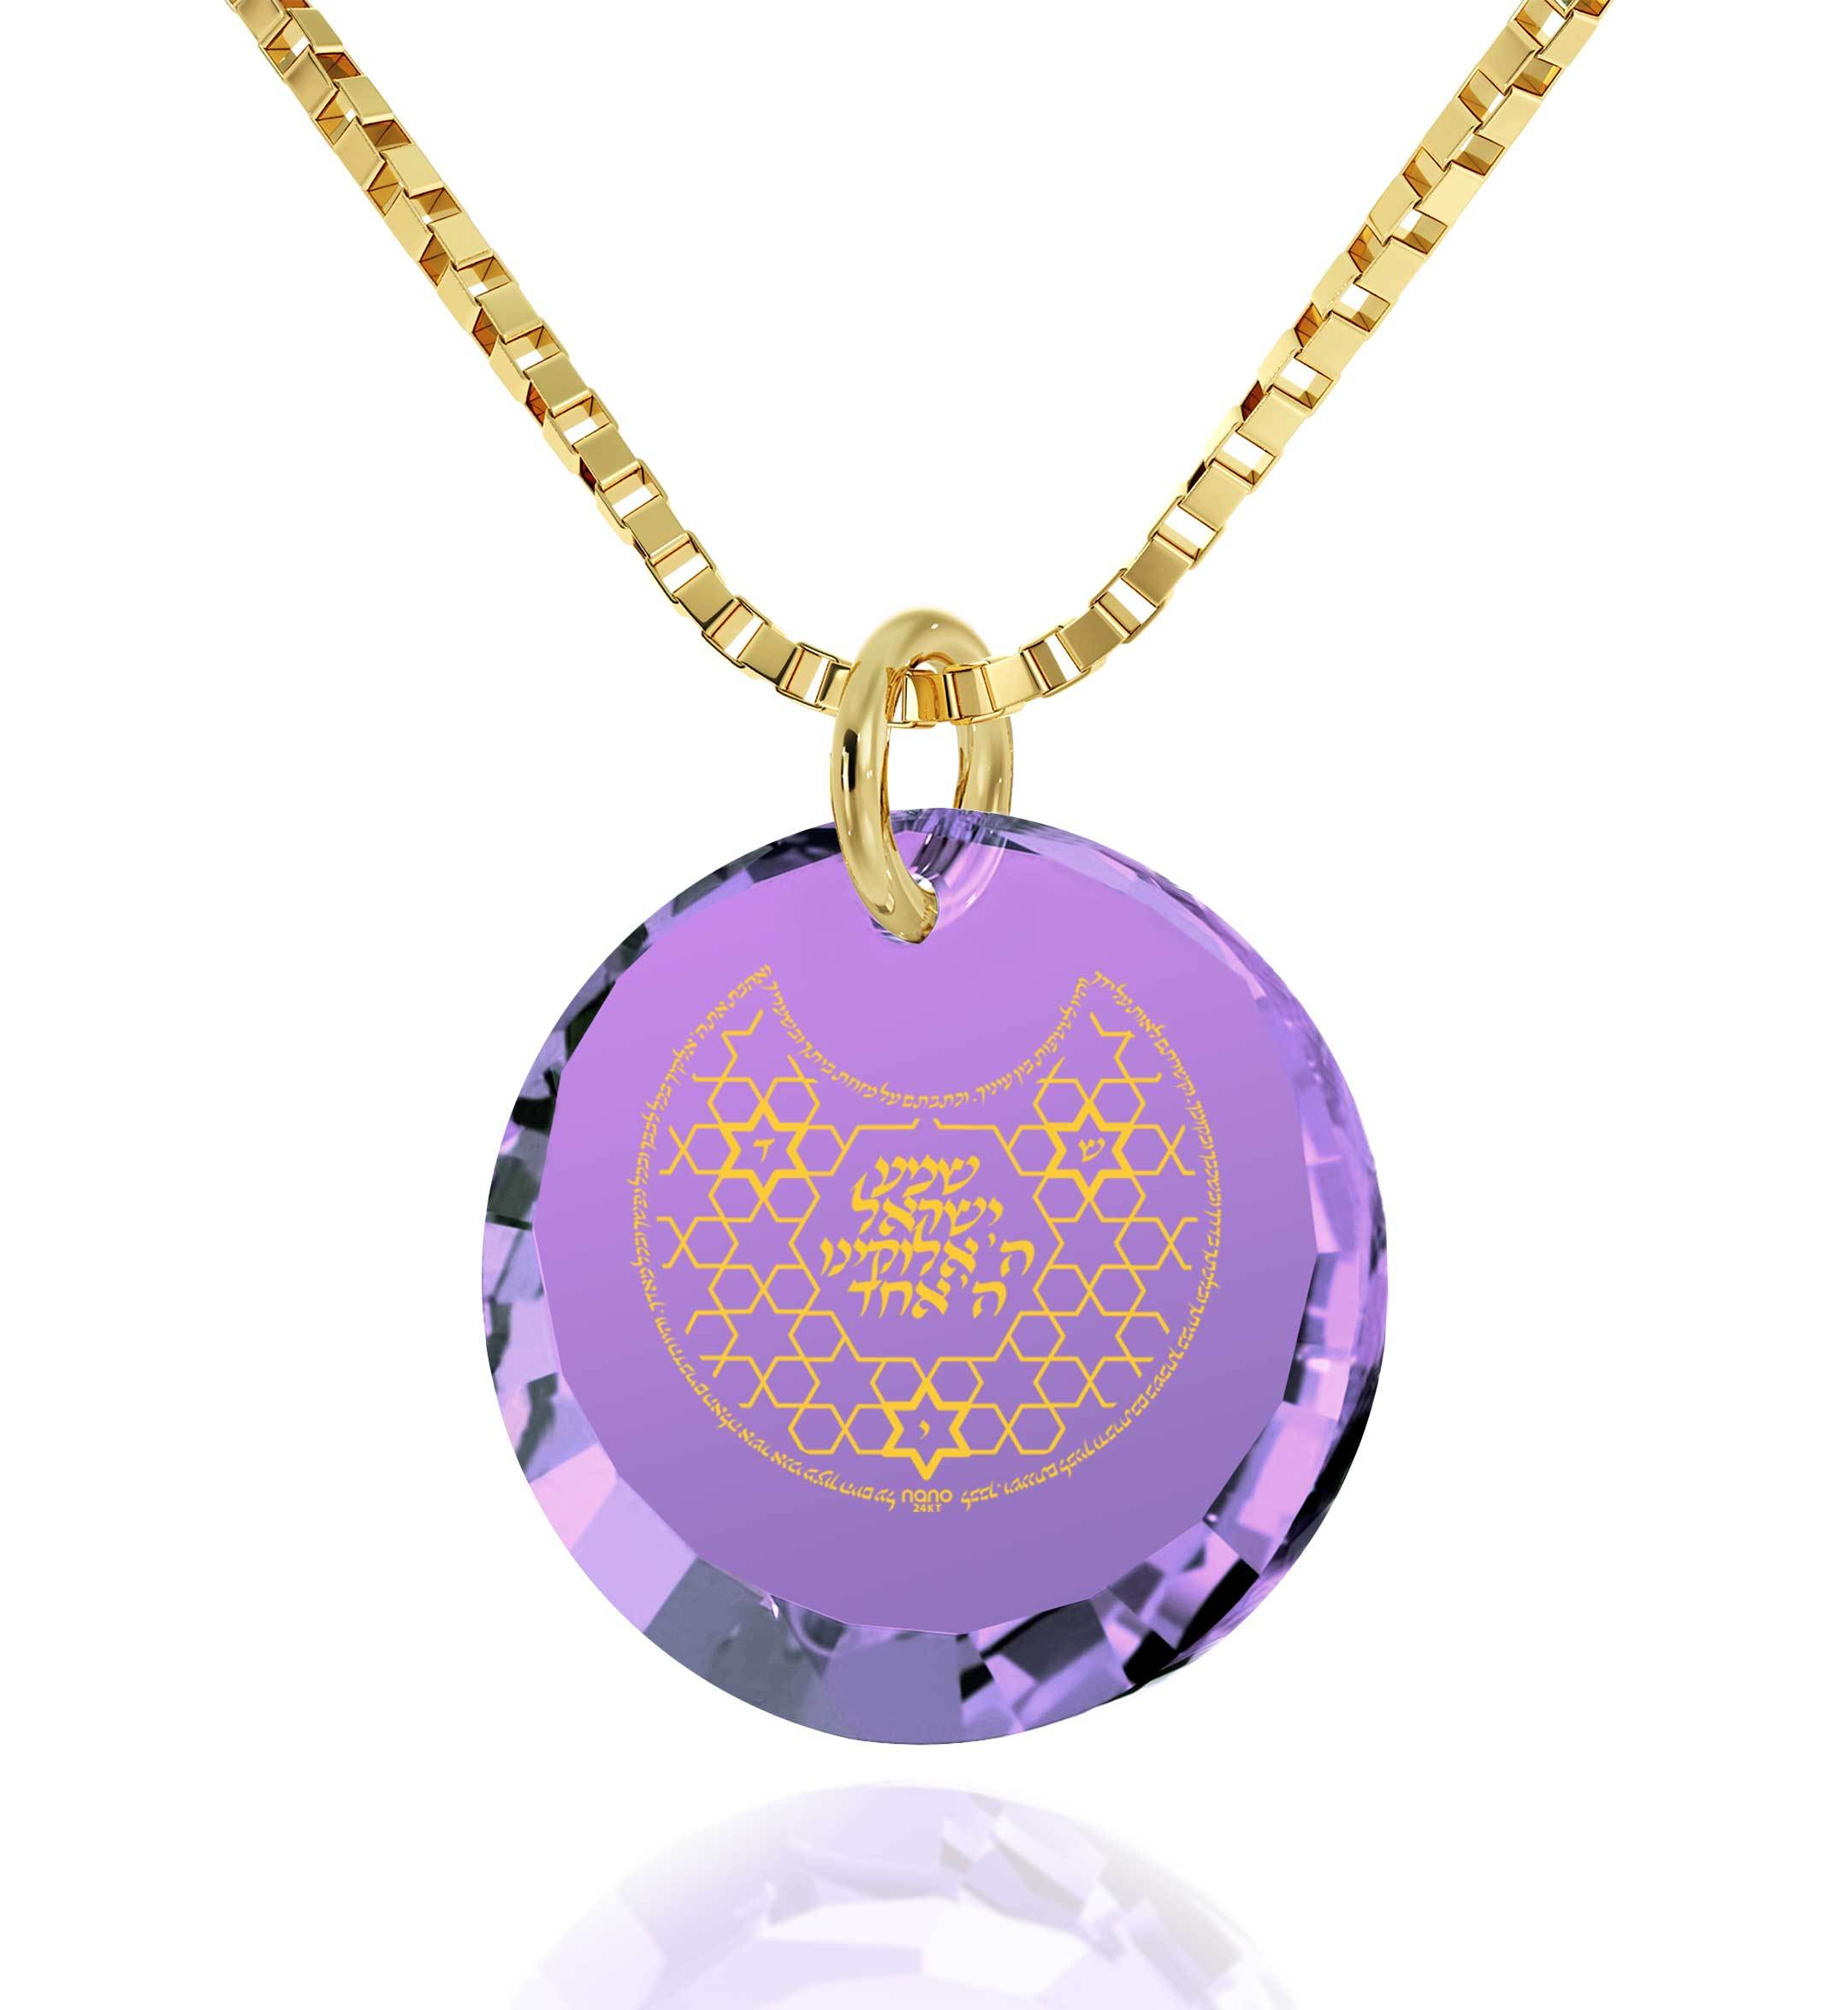 """Shema Yisrael"" Engraved in 24k, Israeli Jewelry with Amethyst Stone Pendant, Judaica Gifts, Nano Jewelry"